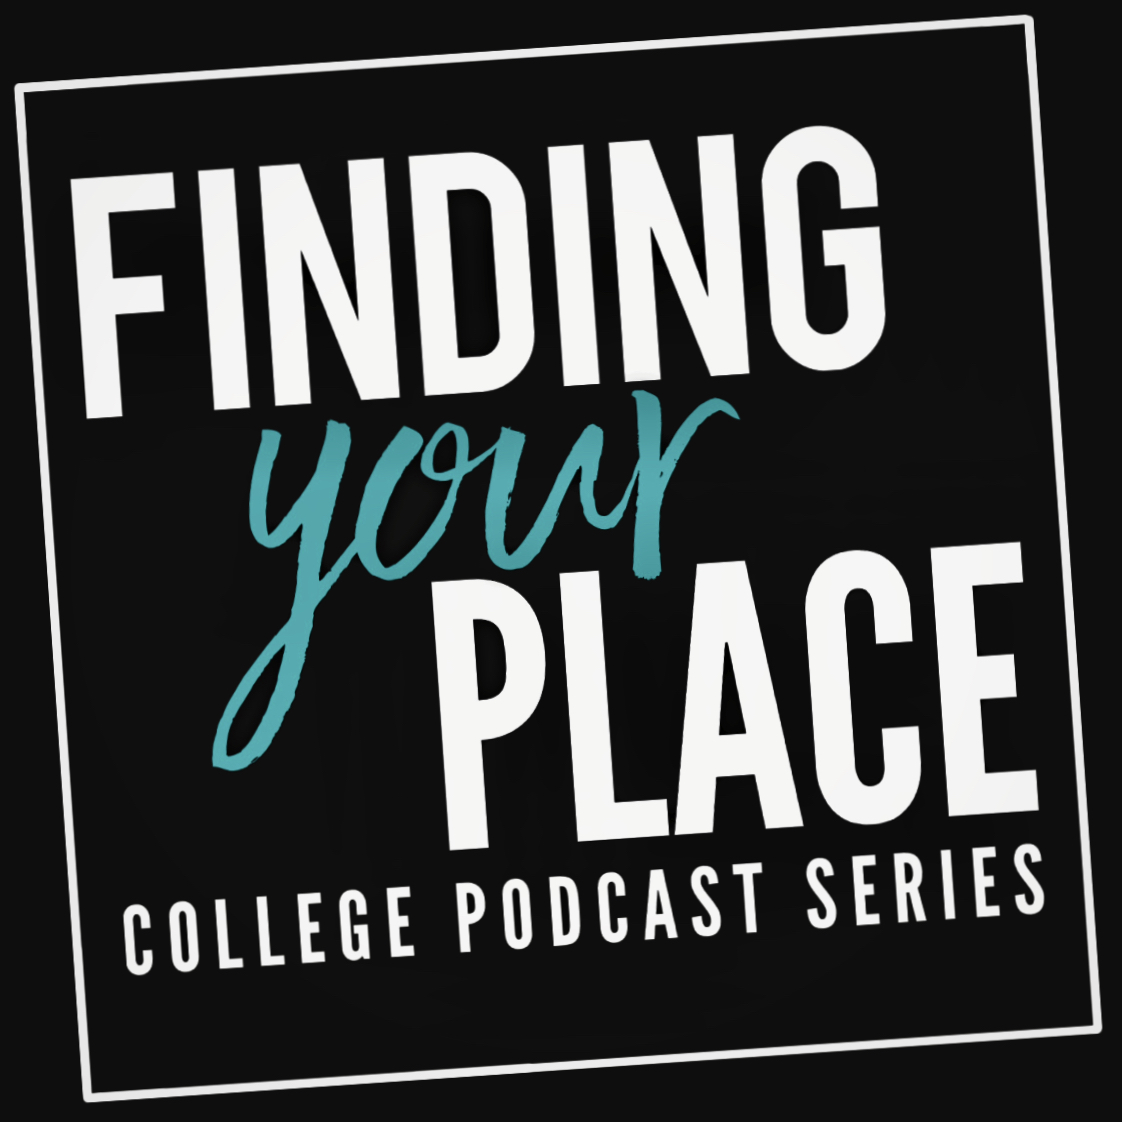 finding-your-place-logo